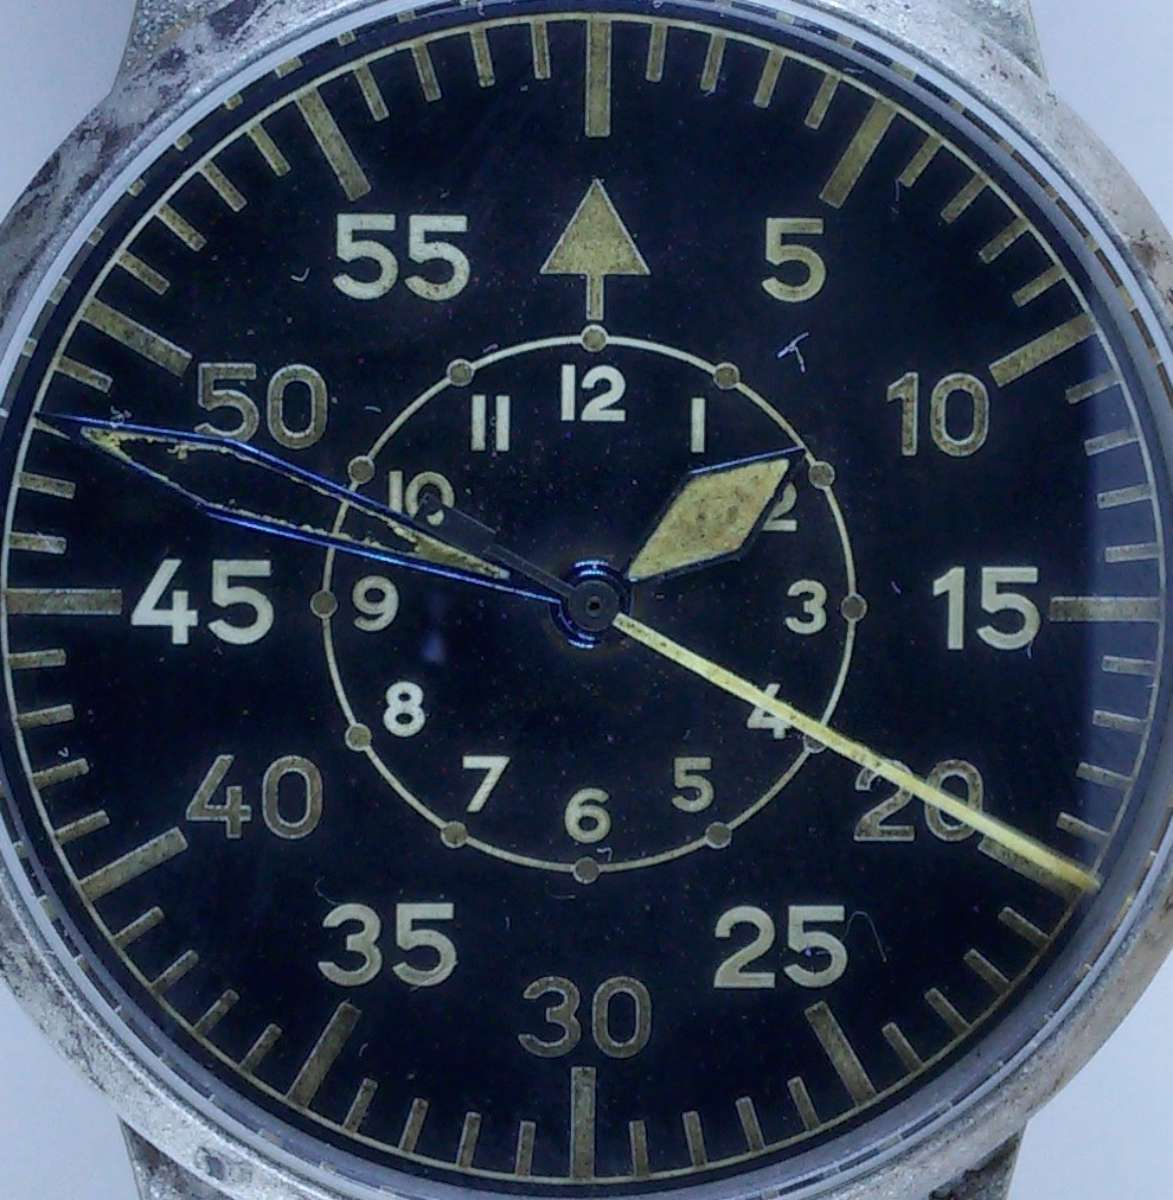 Laco Flieger Heritage 42 dial detail